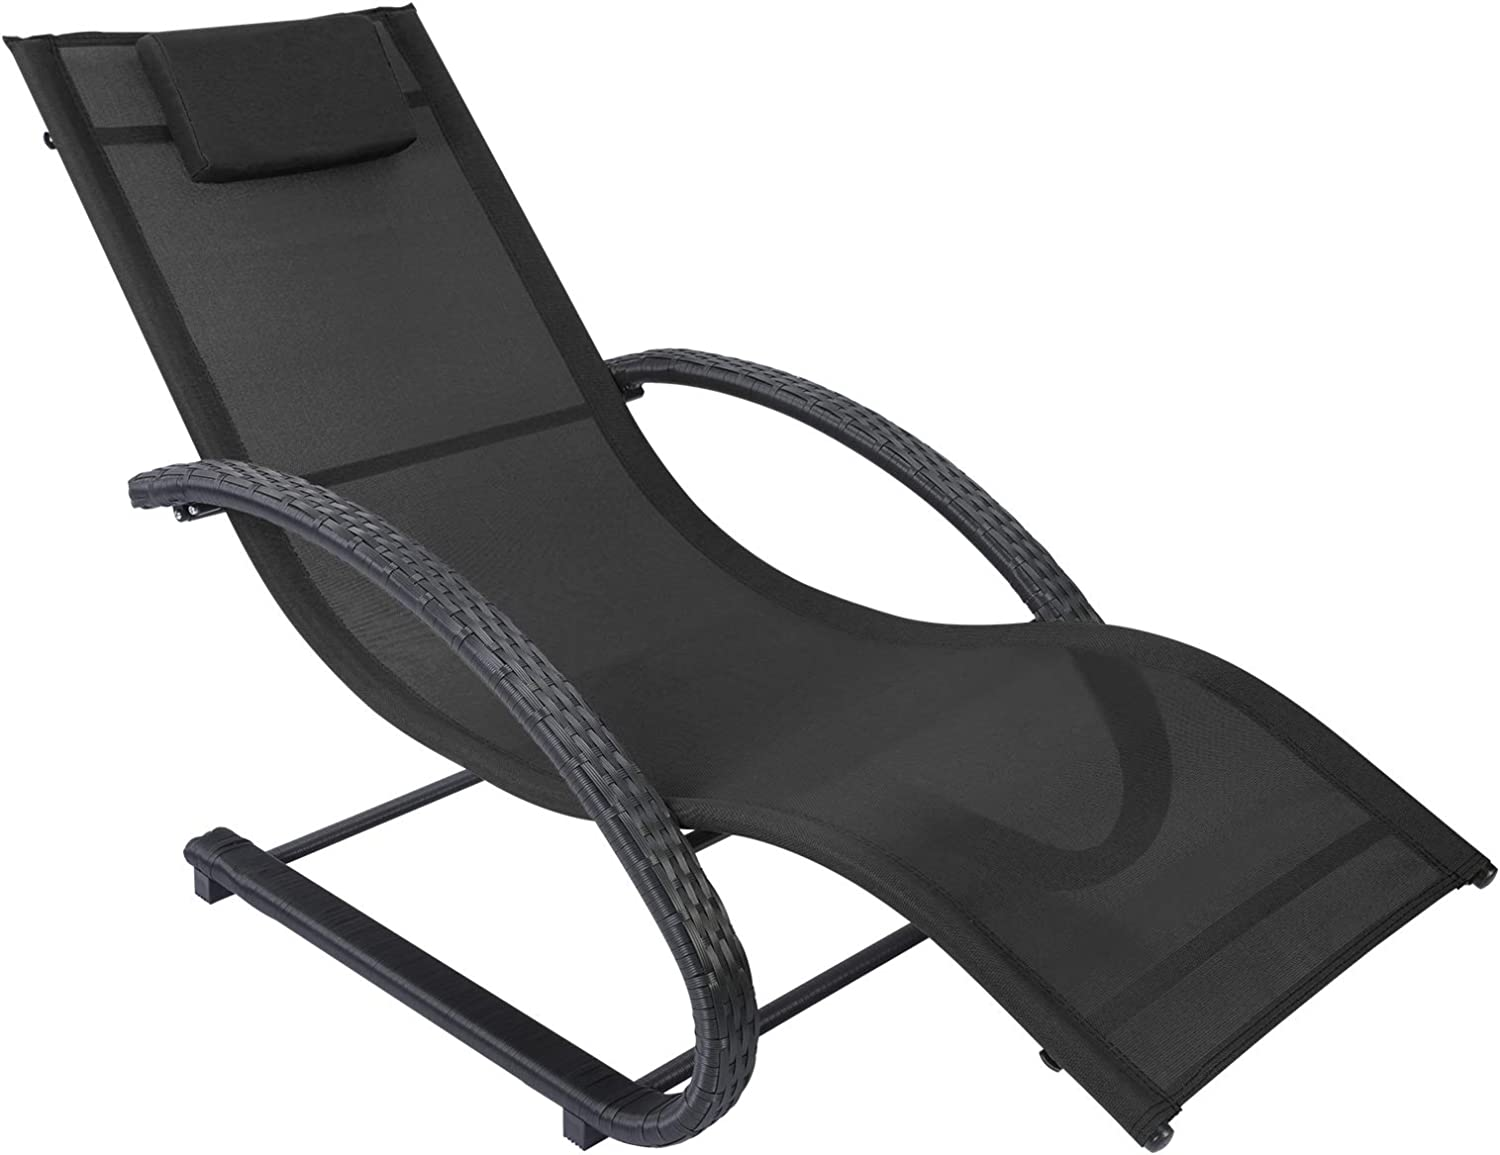 AGESISI Outdoor Patio Lounge Chair Reclining Chair Textilene Mesh Chaise with Hand-Woven Wicker Rattan Armrest and Pillow for Beach Yard Pool Garden Balcony, Black